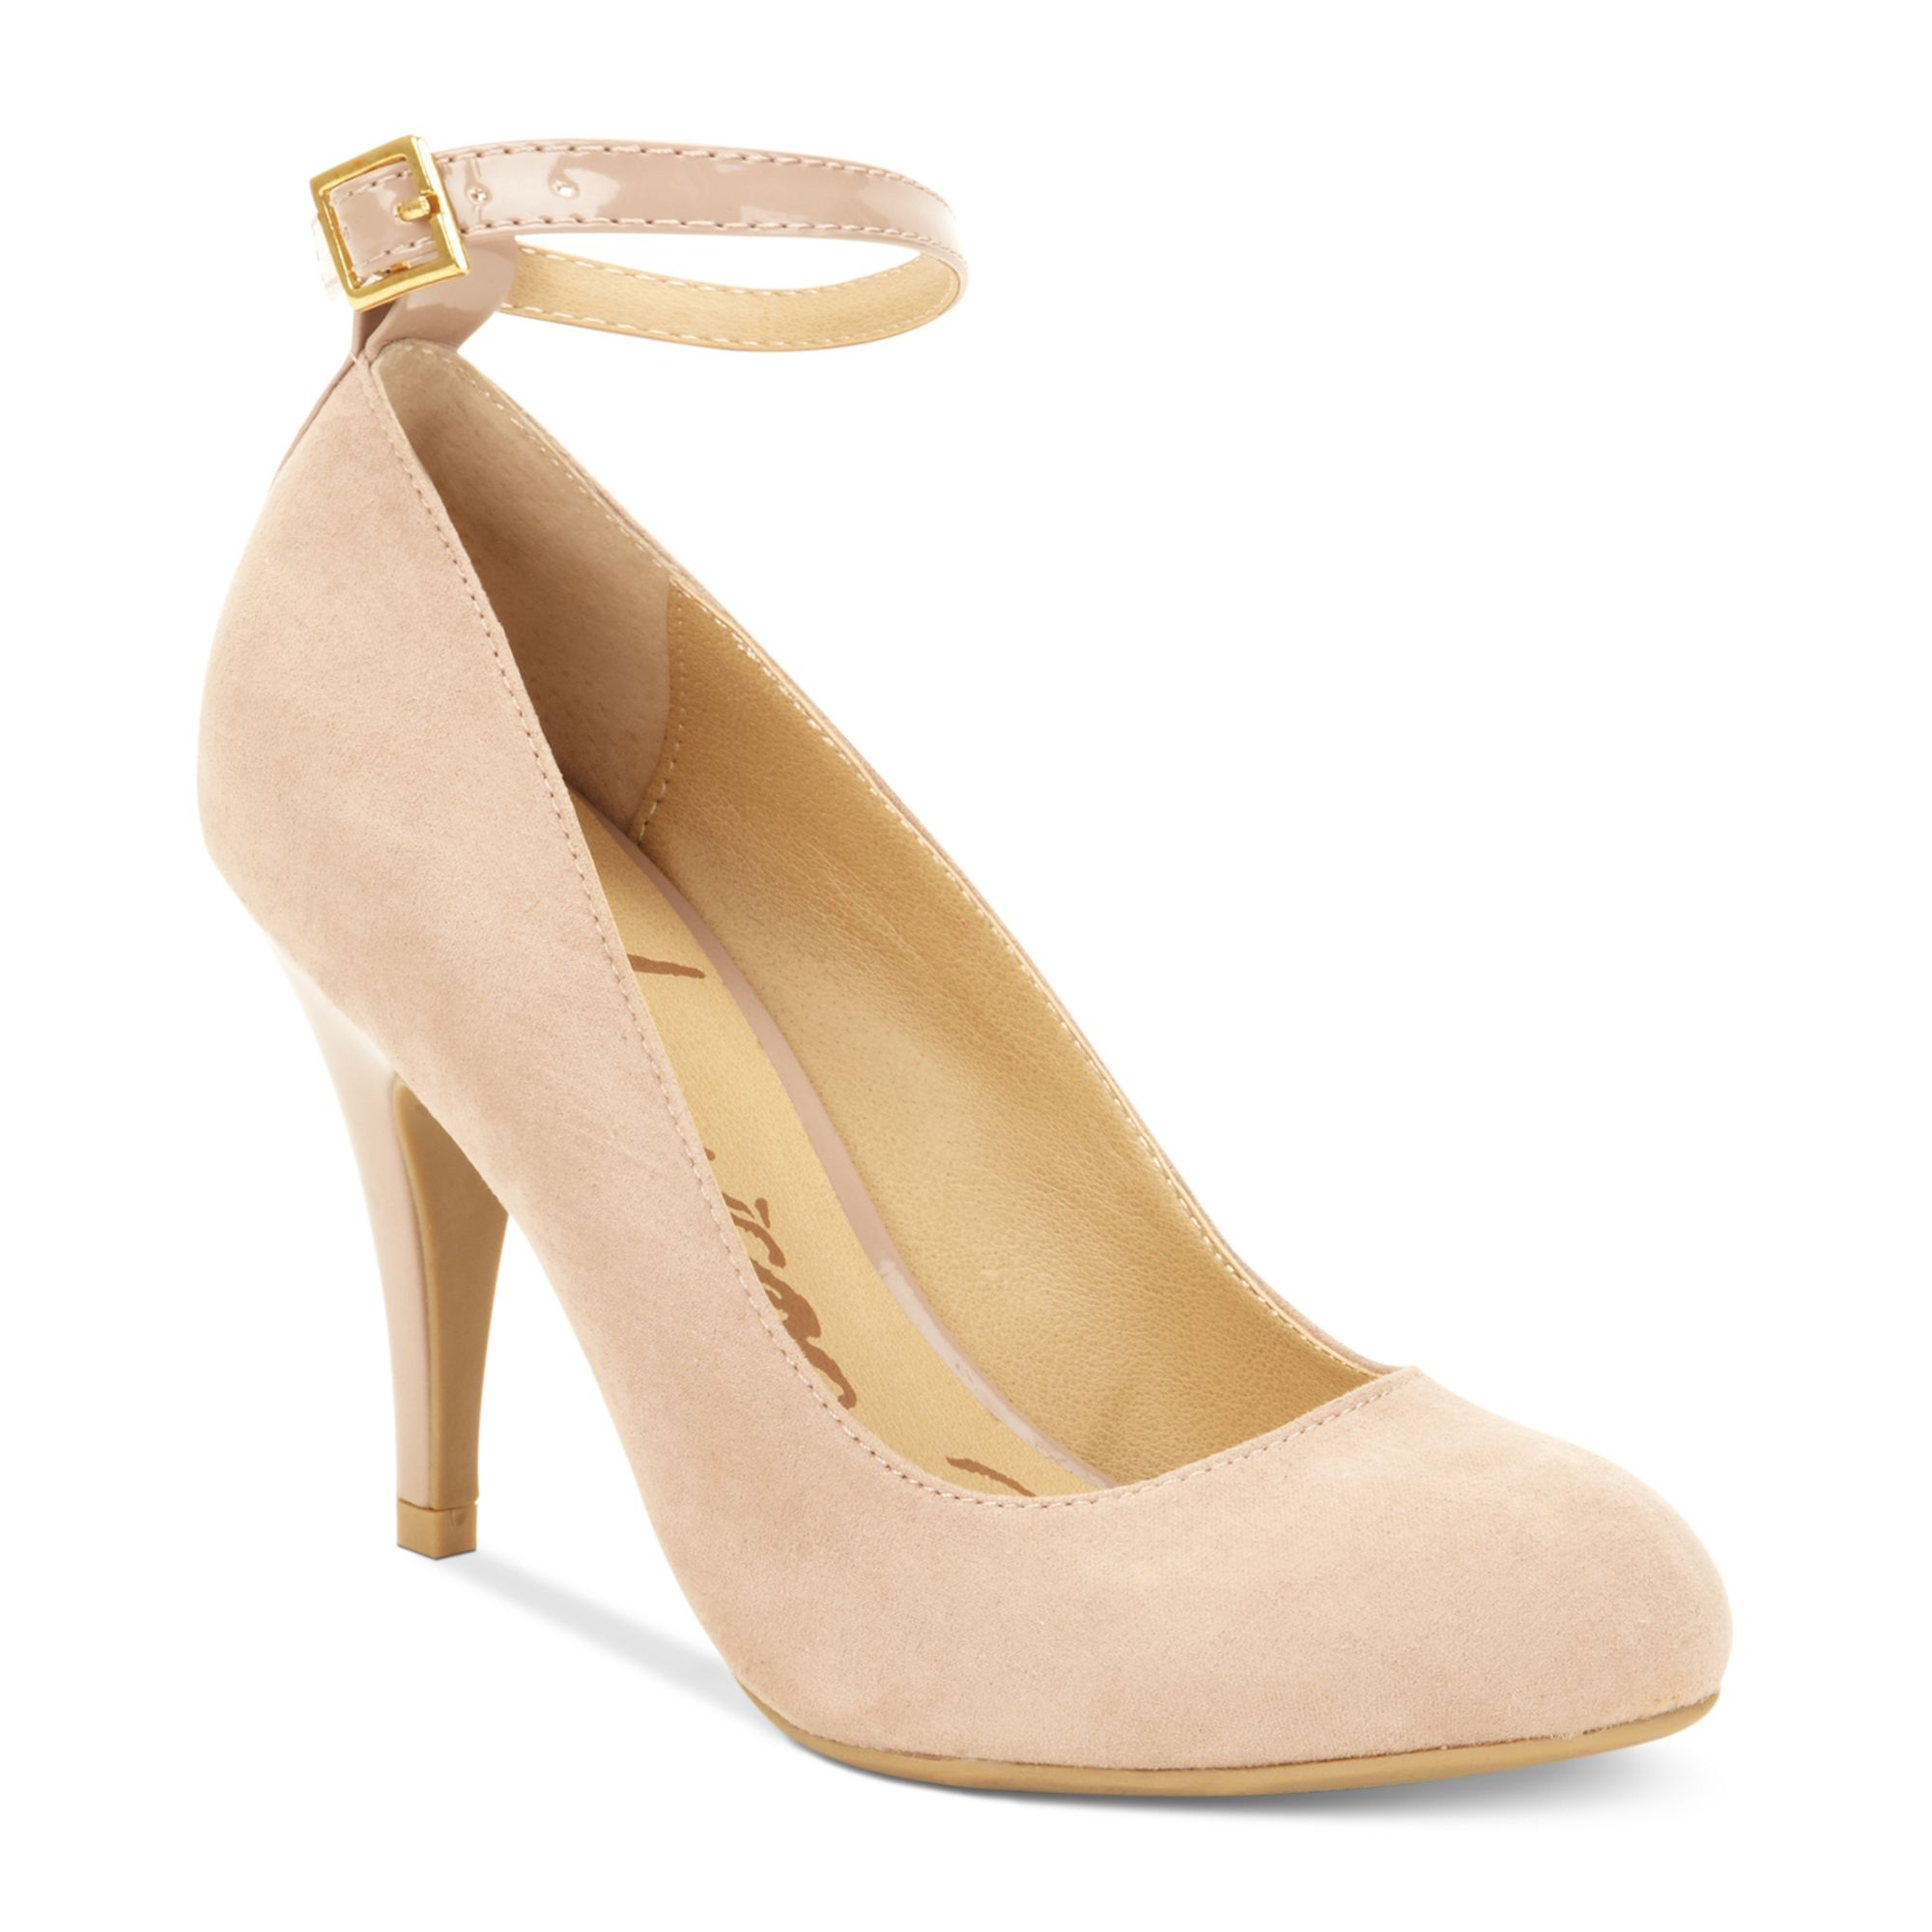 american rag foxyy ankle strap pumps in beige blush lyst. Black Bedroom Furniture Sets. Home Design Ideas